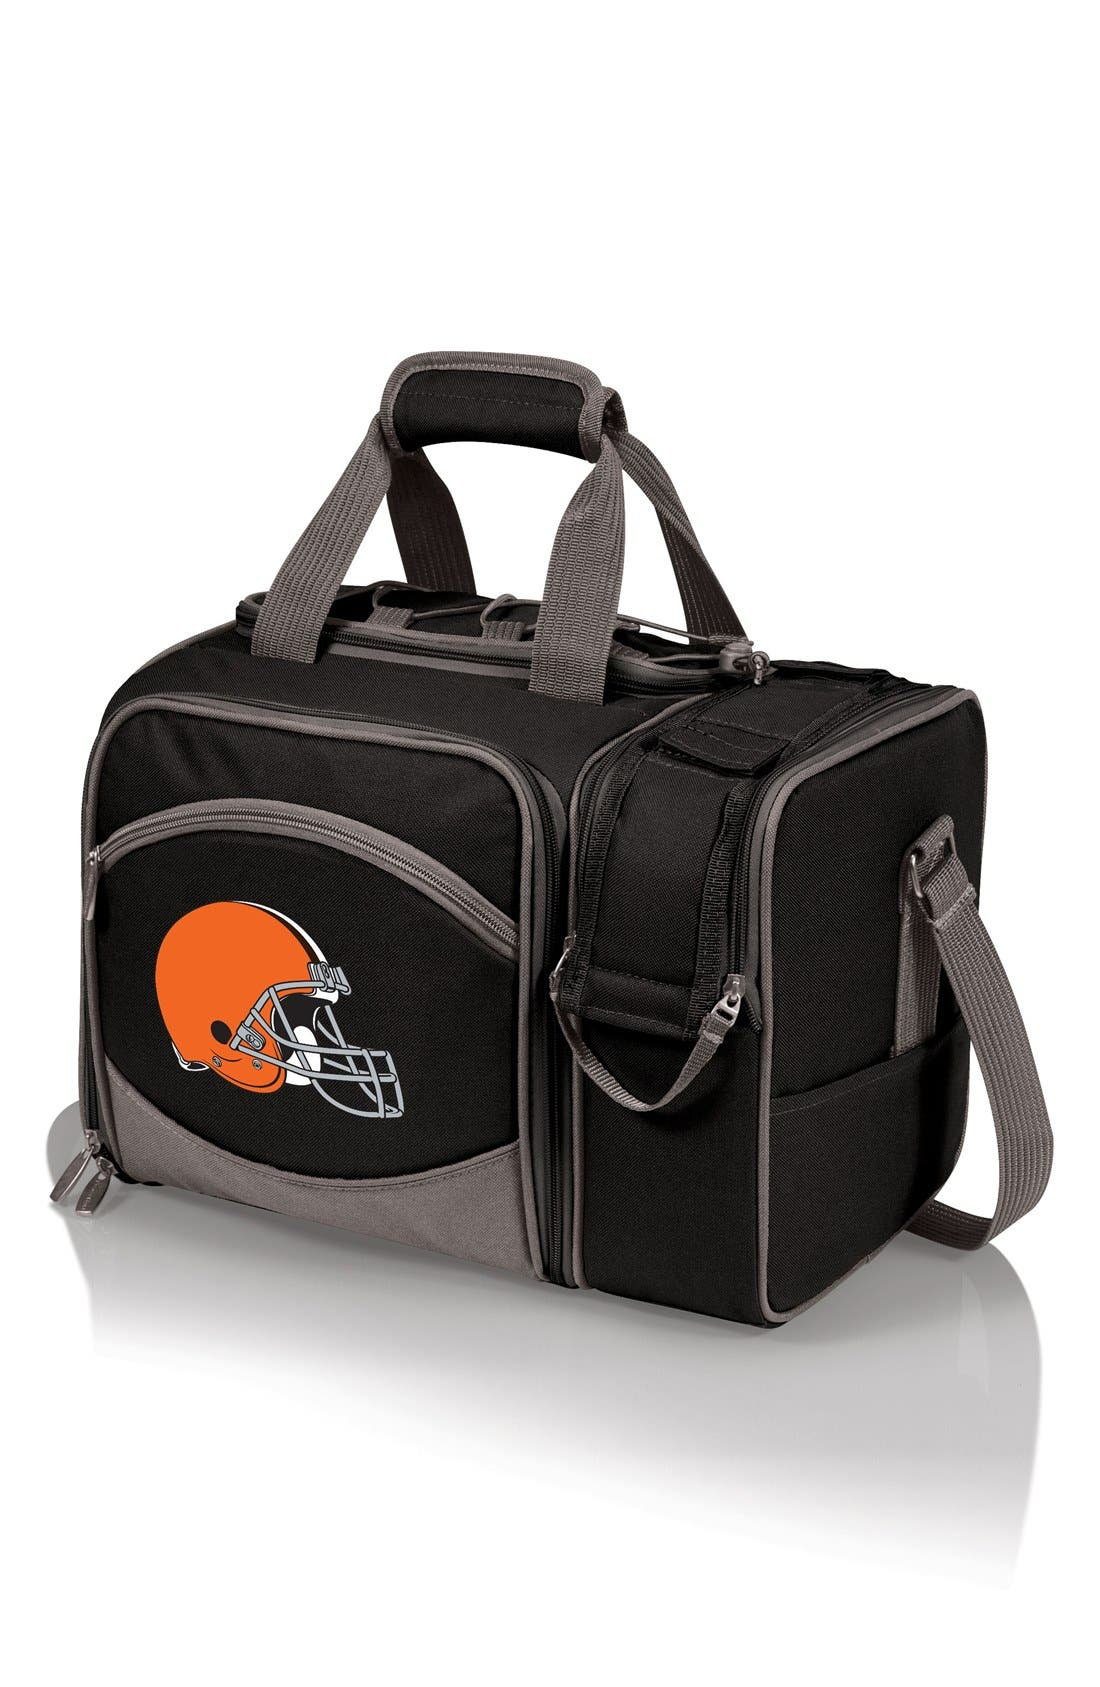 'Malibu' NFL Insulated Picnic Pack,                             Main thumbnail 1, color,                             Cleveland Browns